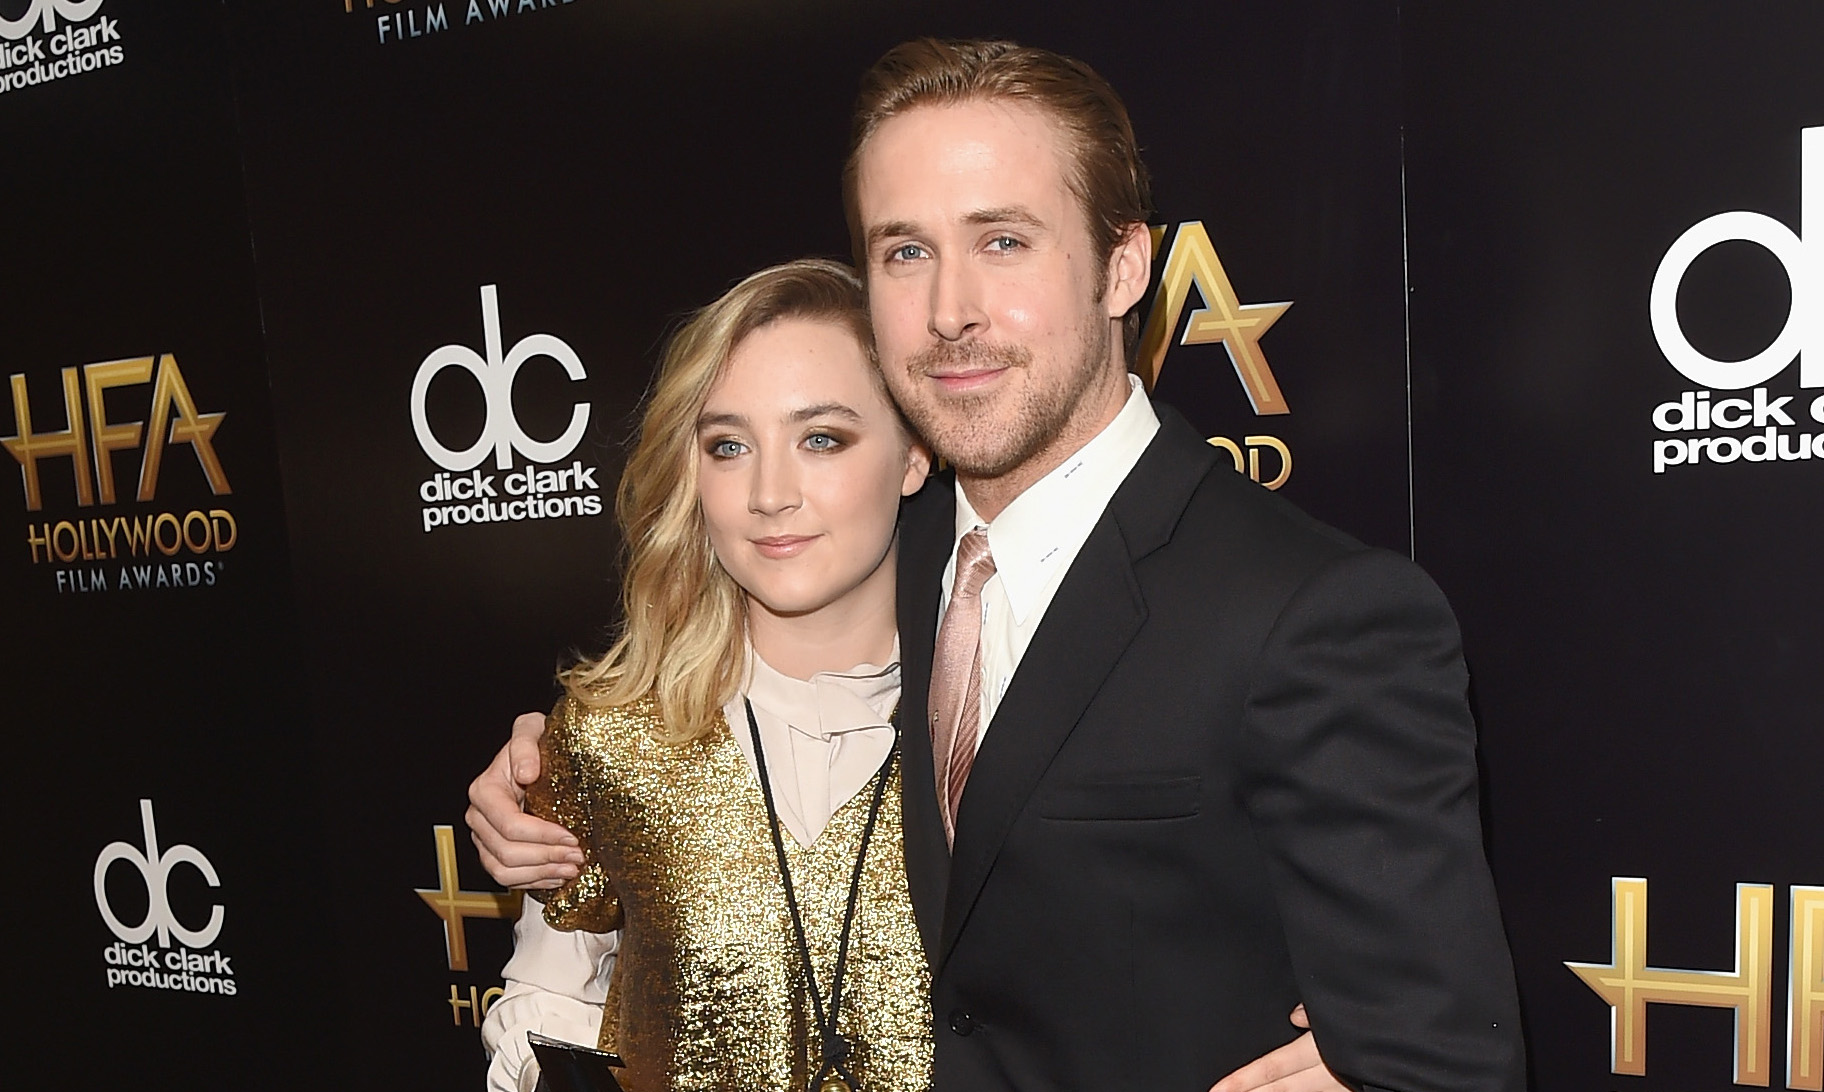 BEVERLY HILLS, CA - NOVEMBER 01: Actors Saoirse Ronan (L), winner of the New Hollywood Award for 'Brooklyn', and Ryan Gosling pose in the press room during the 19th Annual Hollywood Film Awards at The Beverly Hilton Hotel on November 1, 2015 in Beverly Hills, California. (Photo by Jason Merritt/Getty Images)